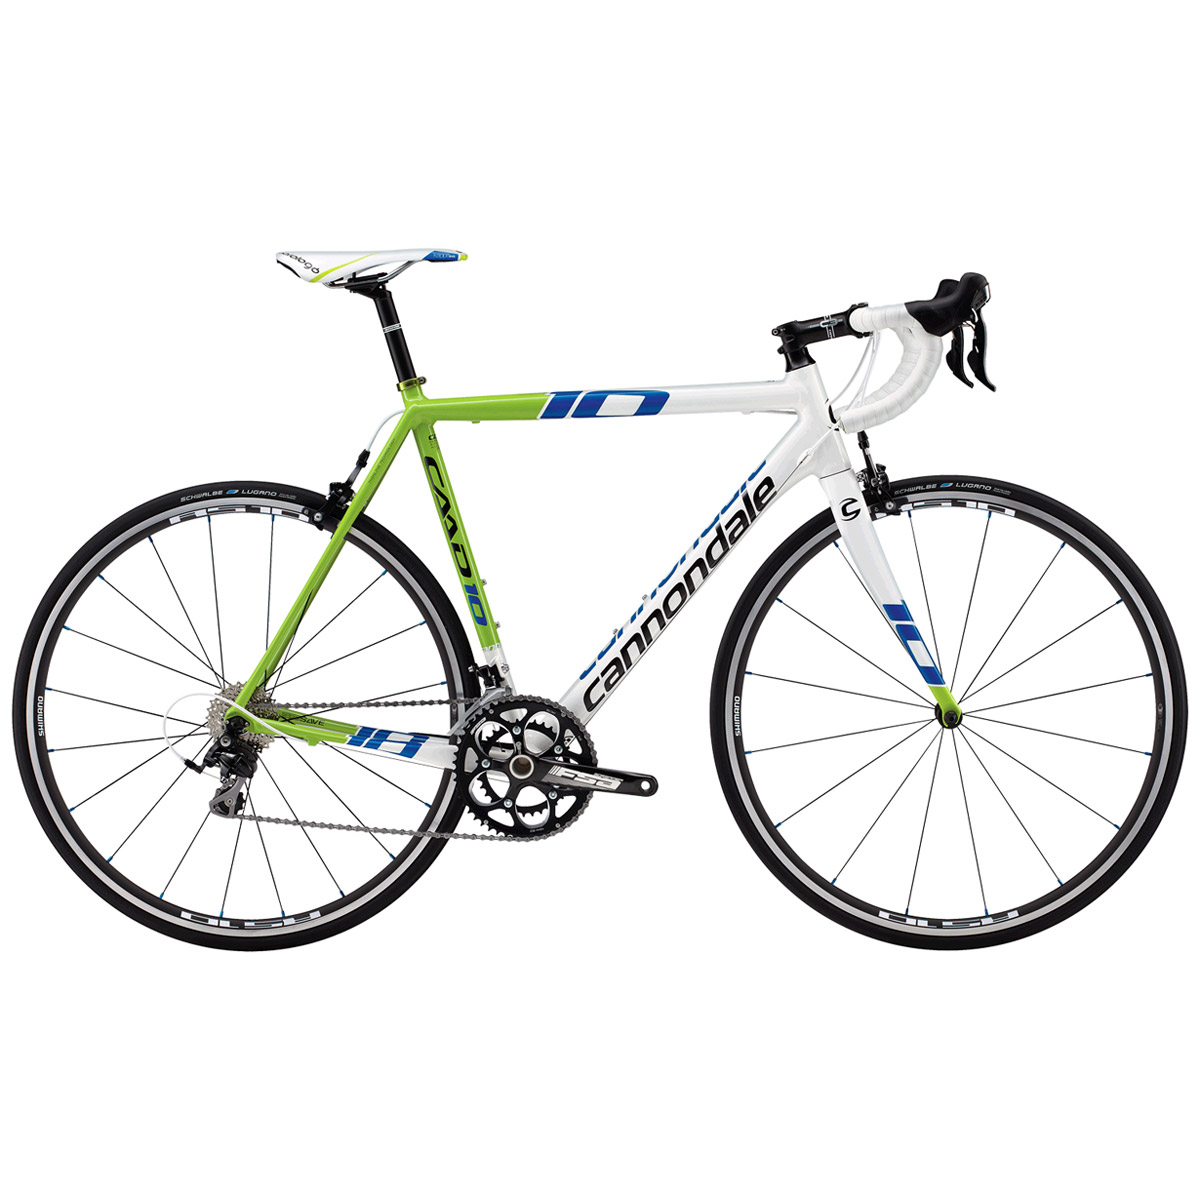 Cannondale CAAD 10 Road Bike – 10 – 15 Days Hire